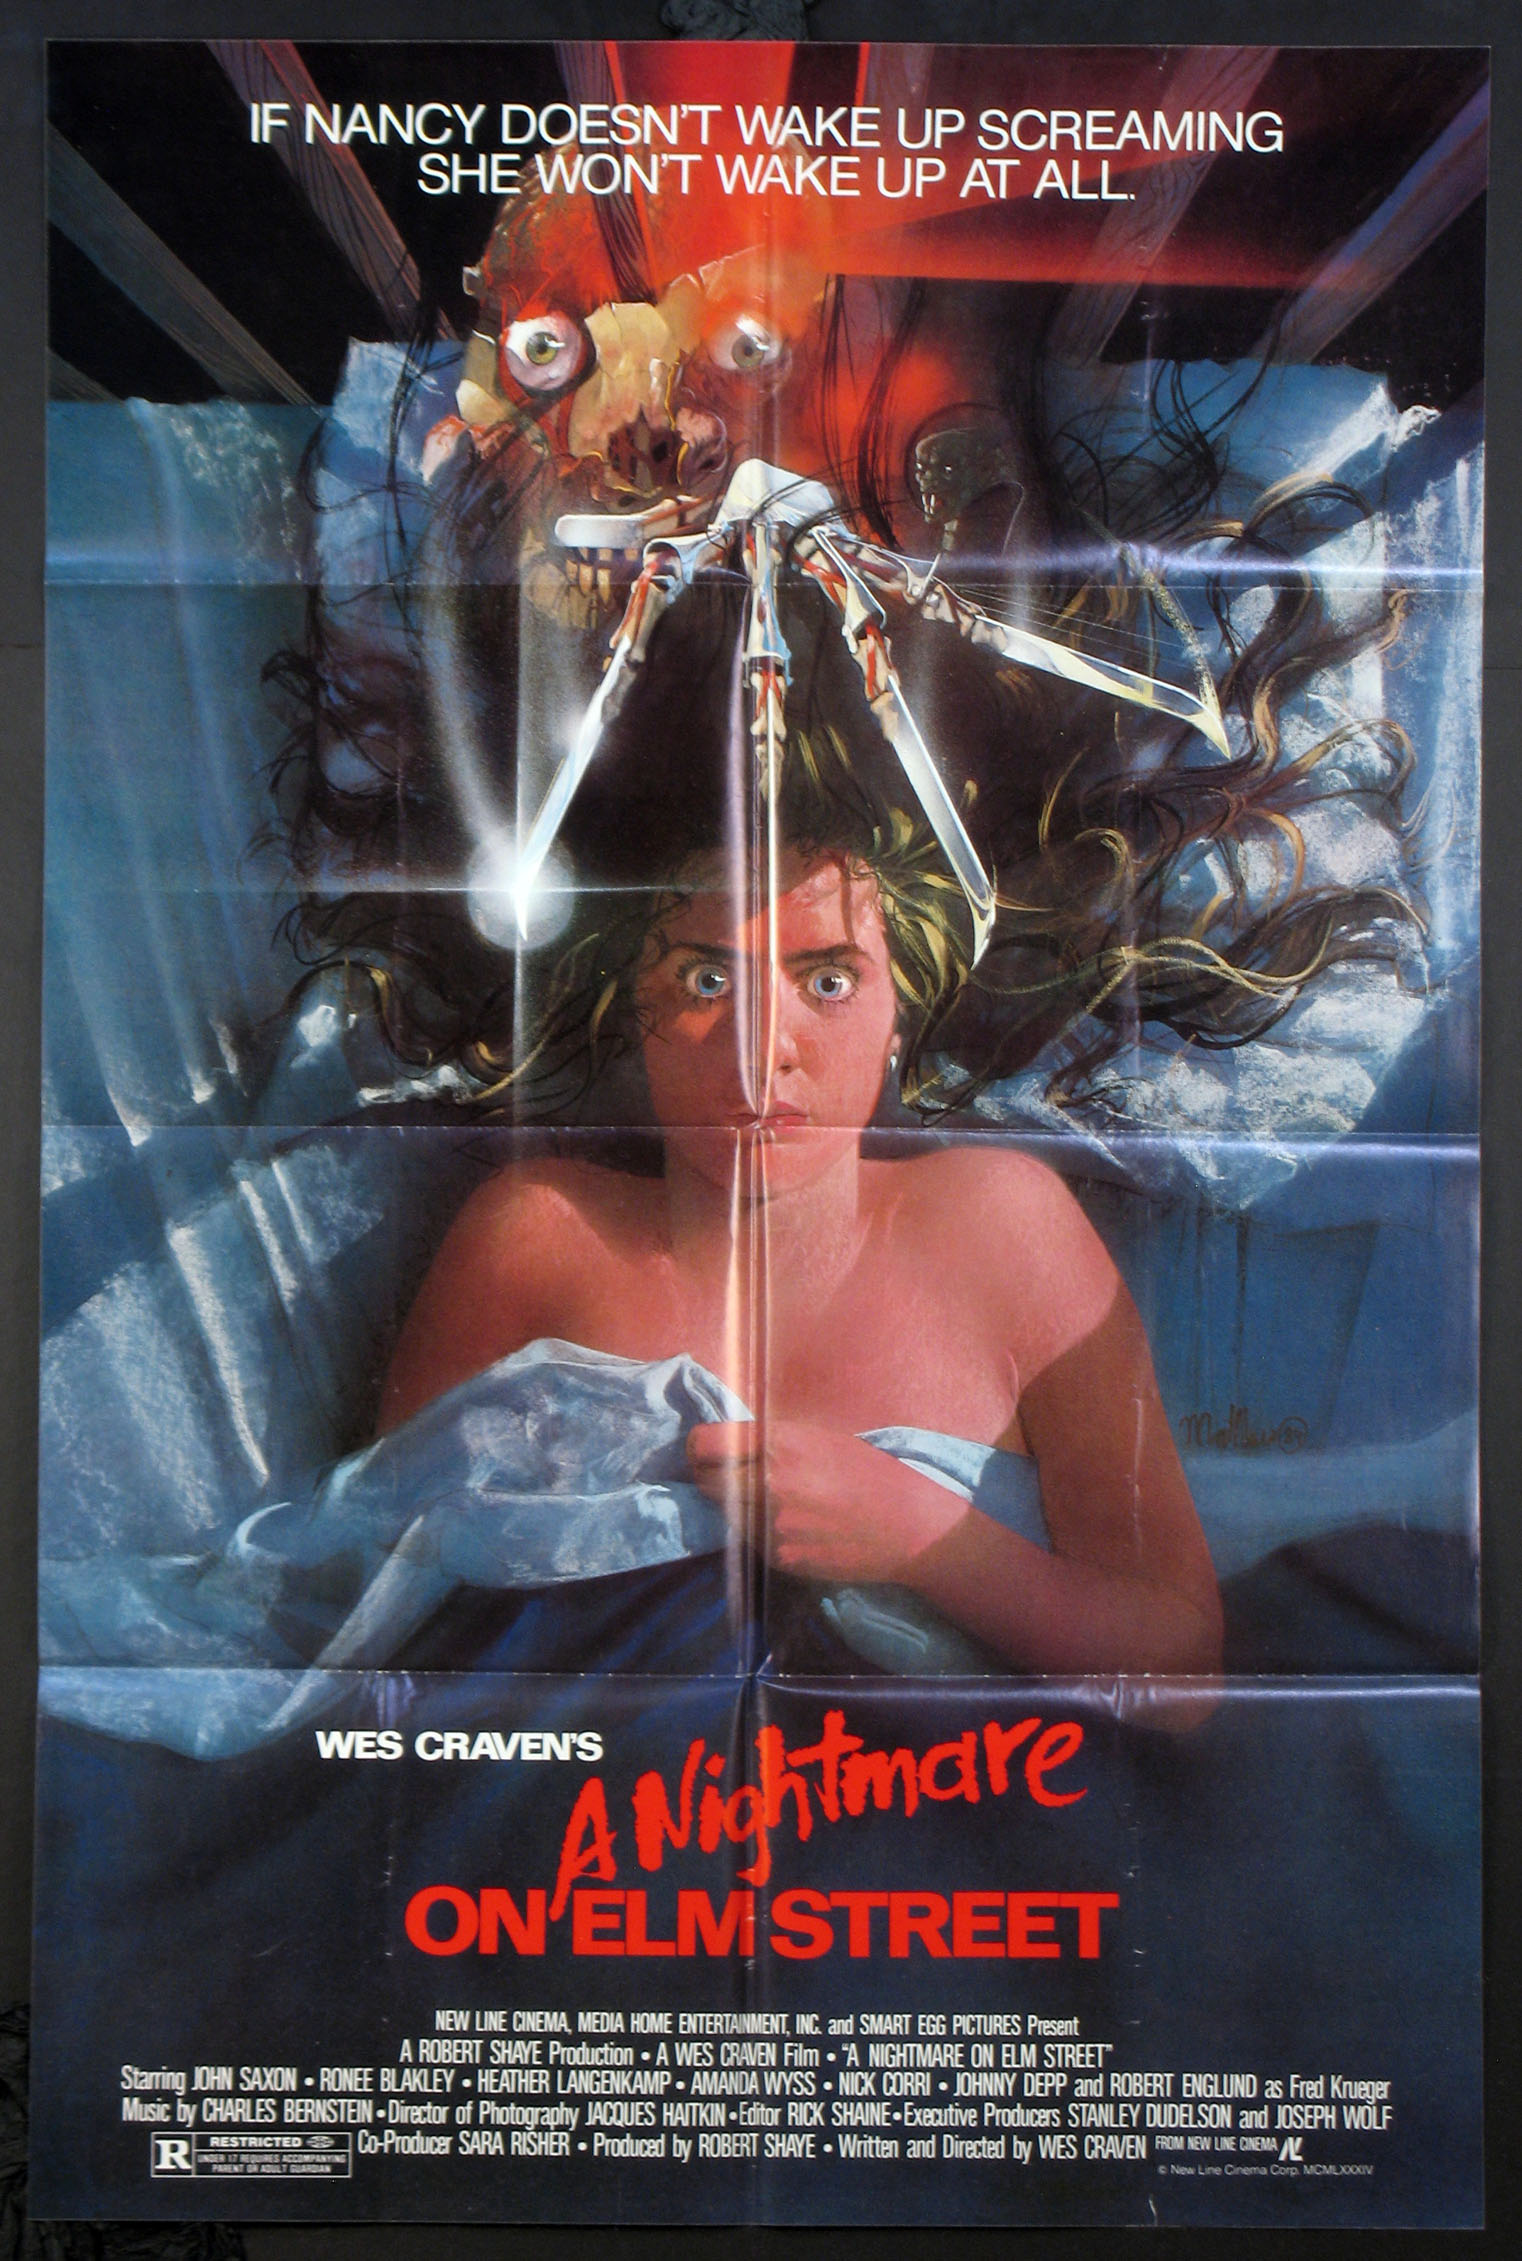 NIGHTMARE ON ELM STREET, A @ FilmPosters.com